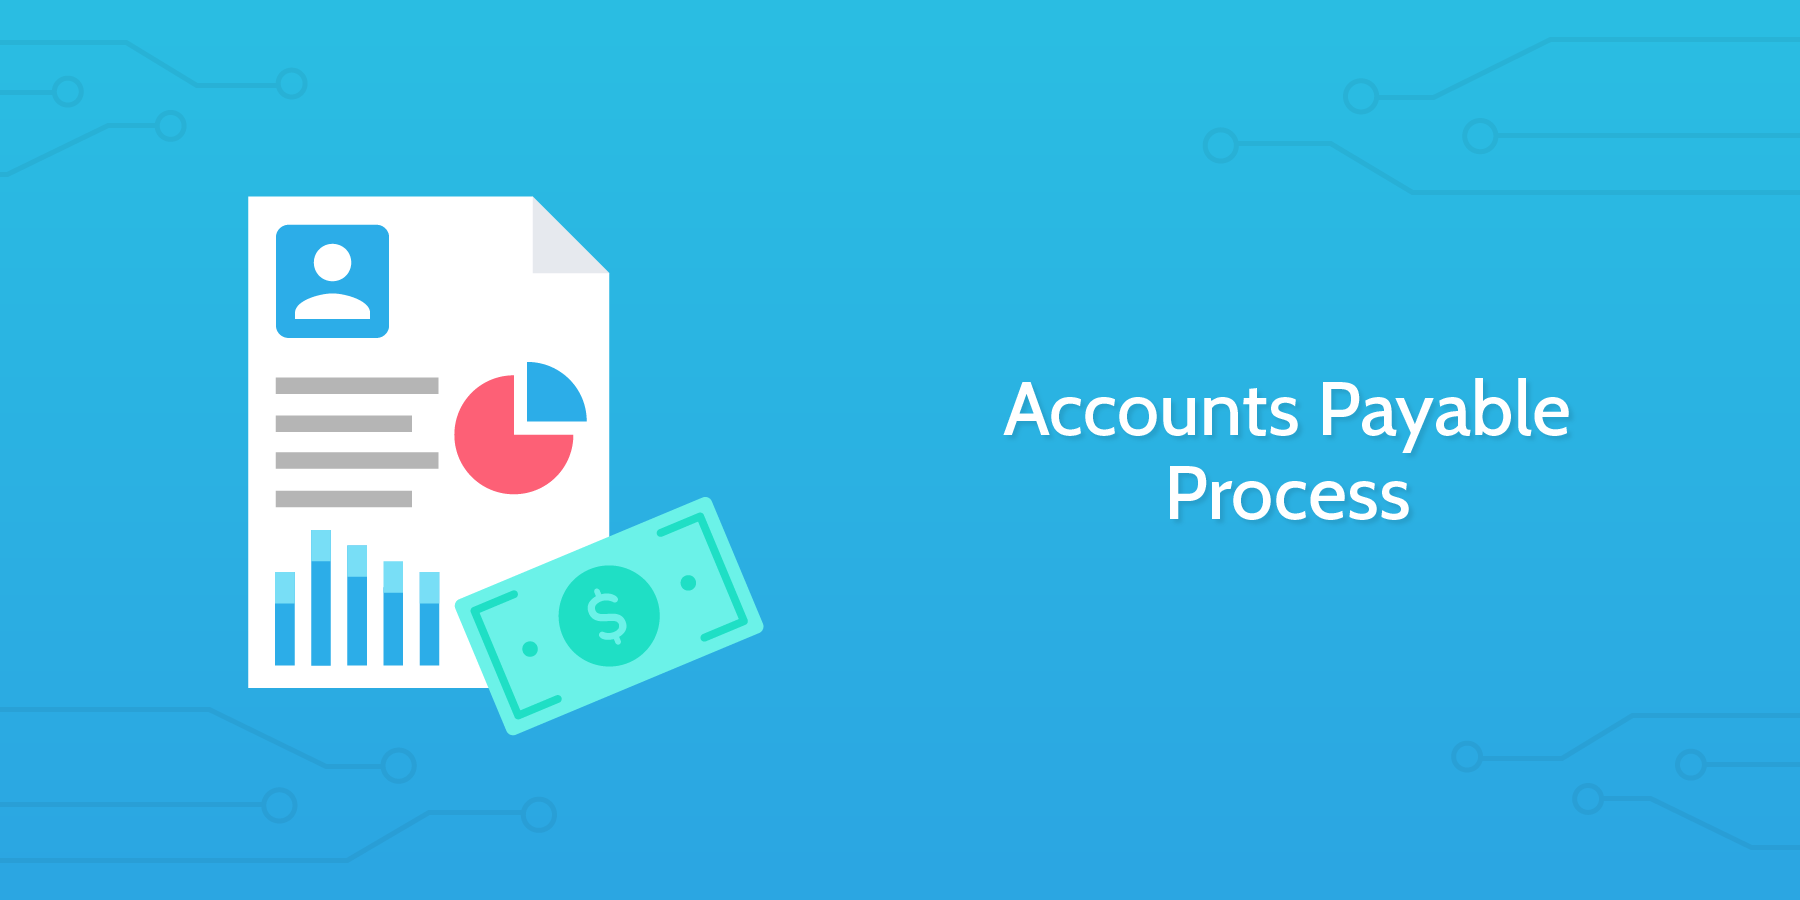 accounts-payable-process